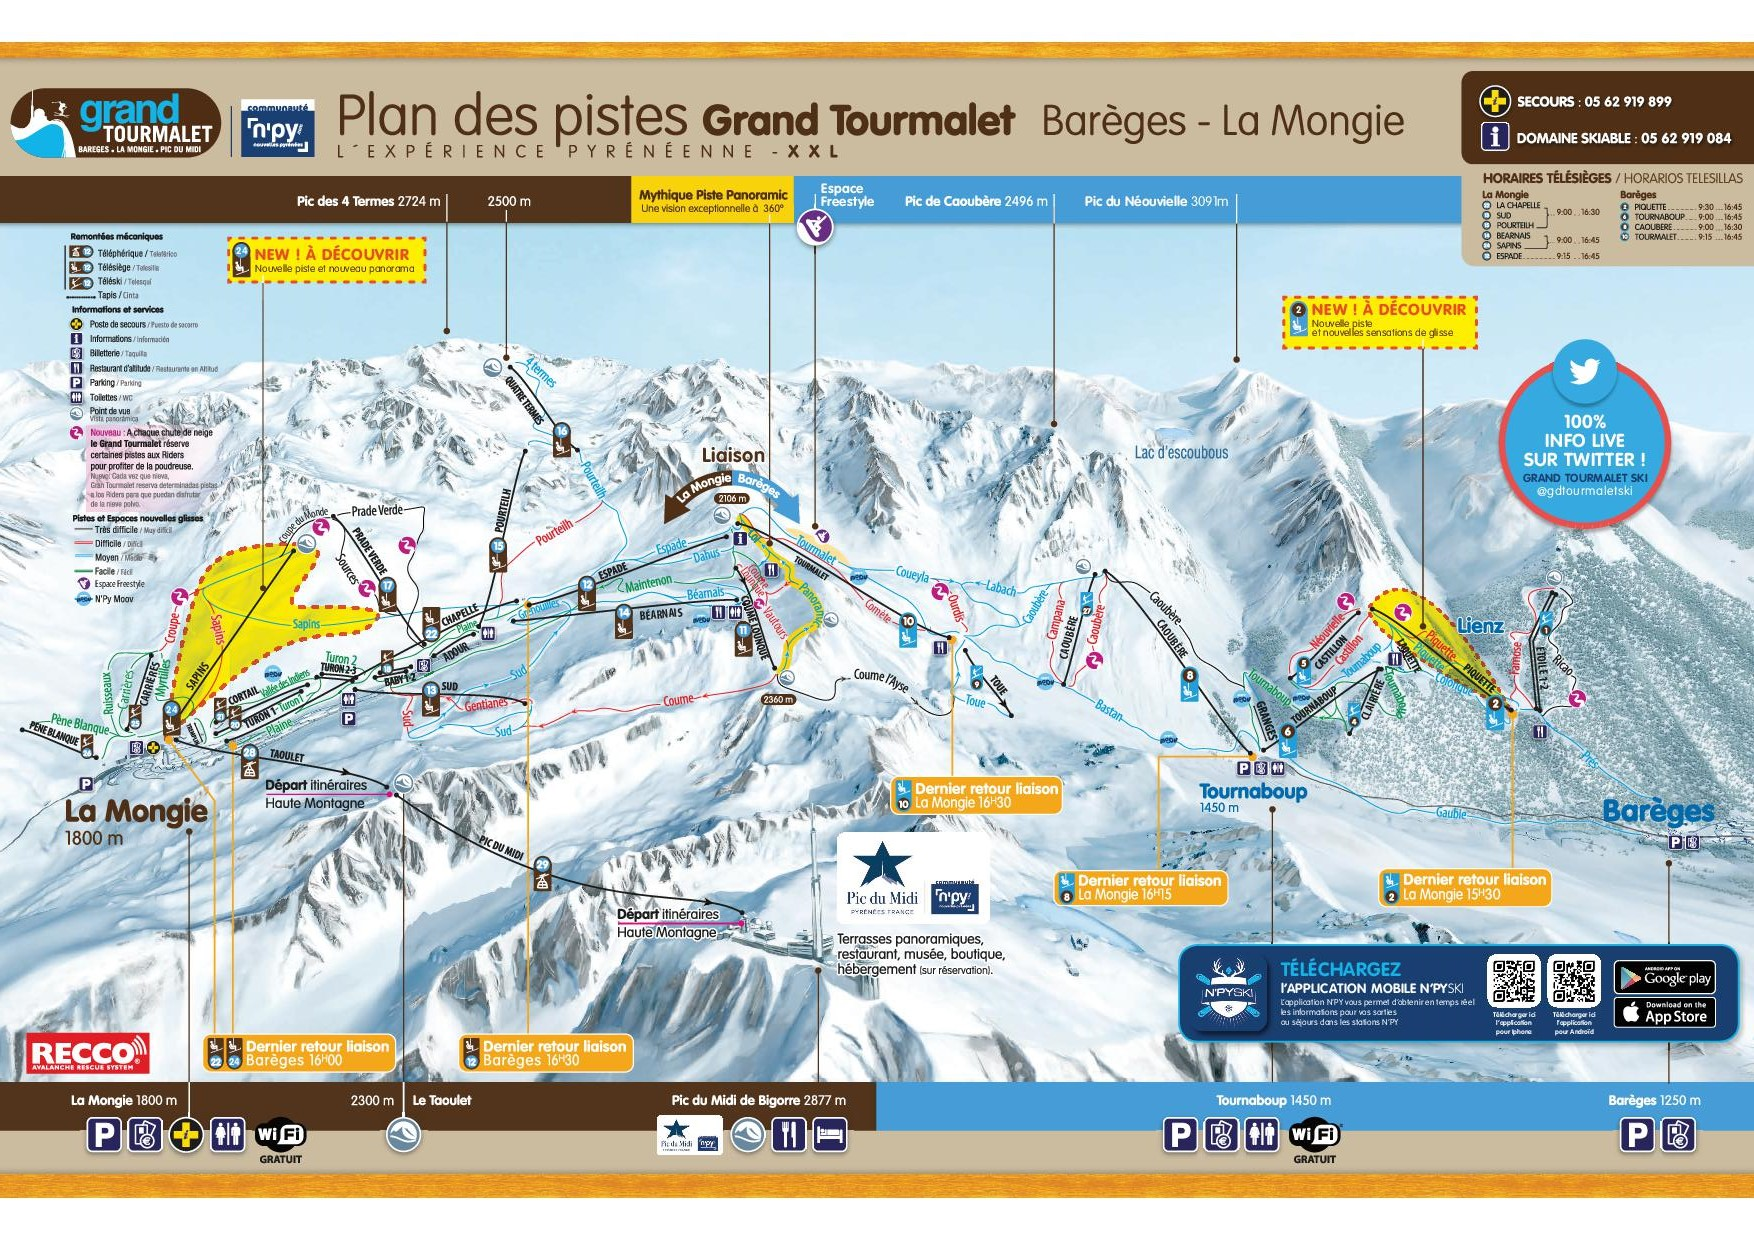 Plan des pistes Grand Tourmalet